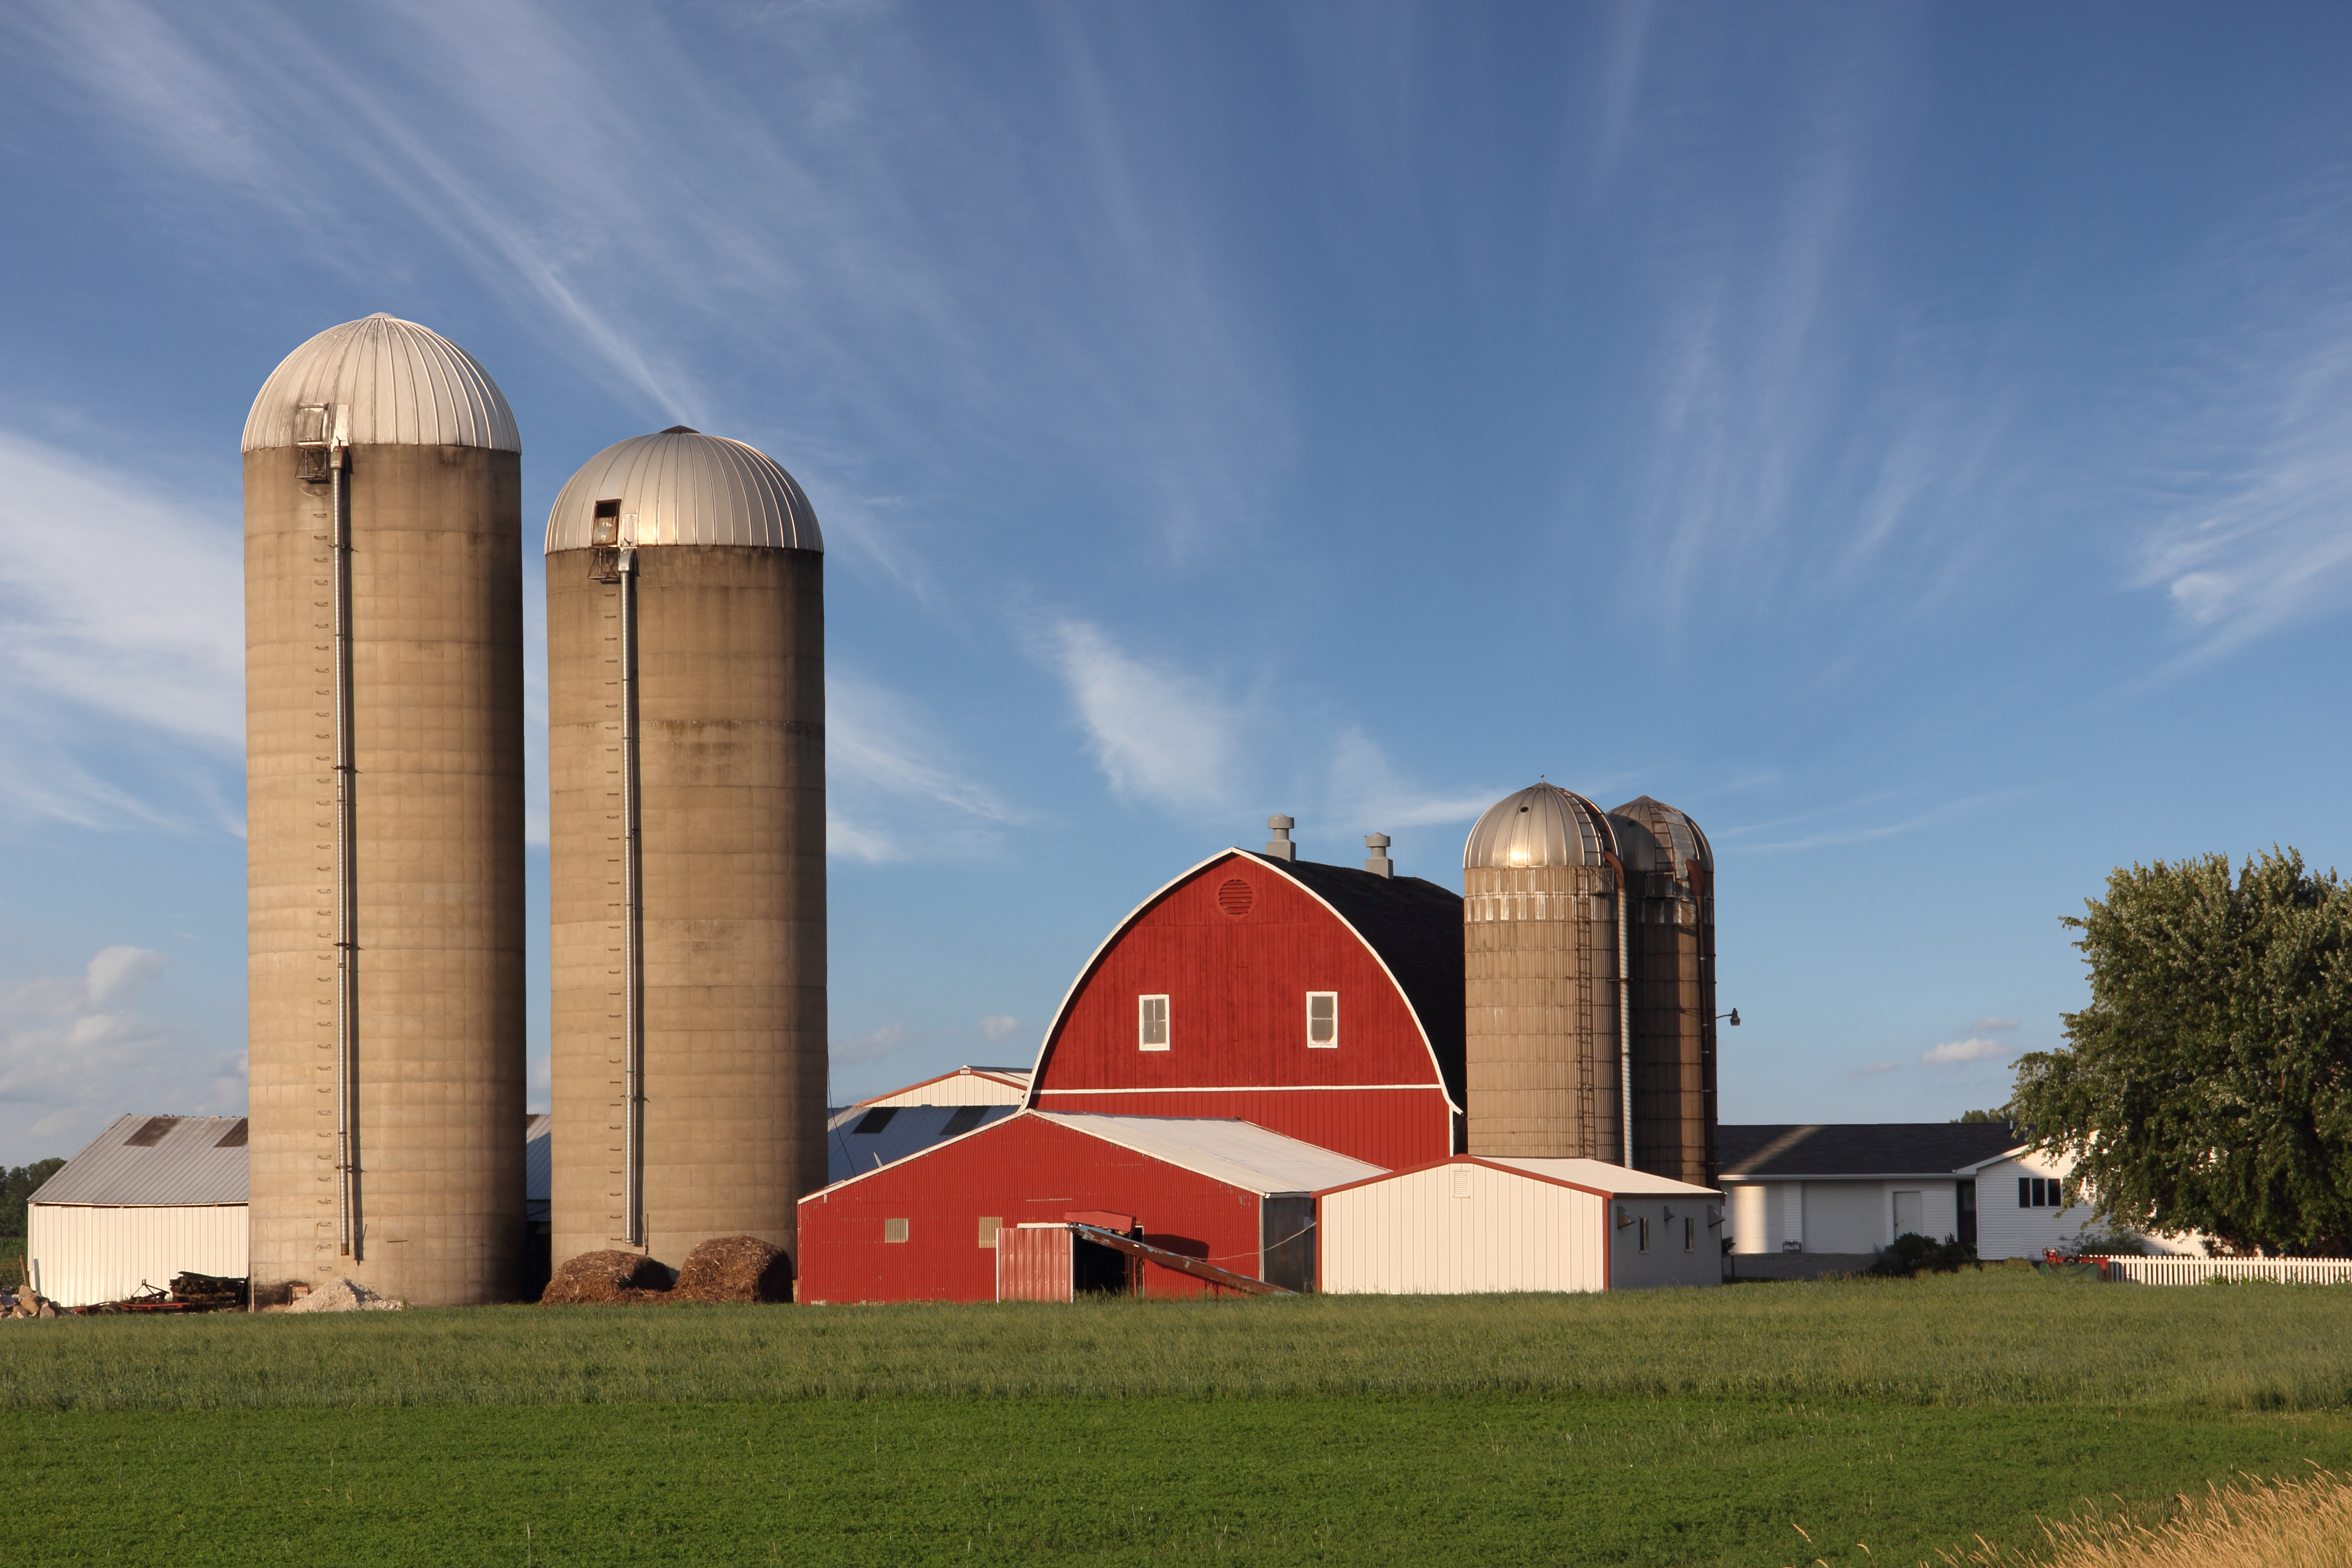 How Do Grain Silos Work?